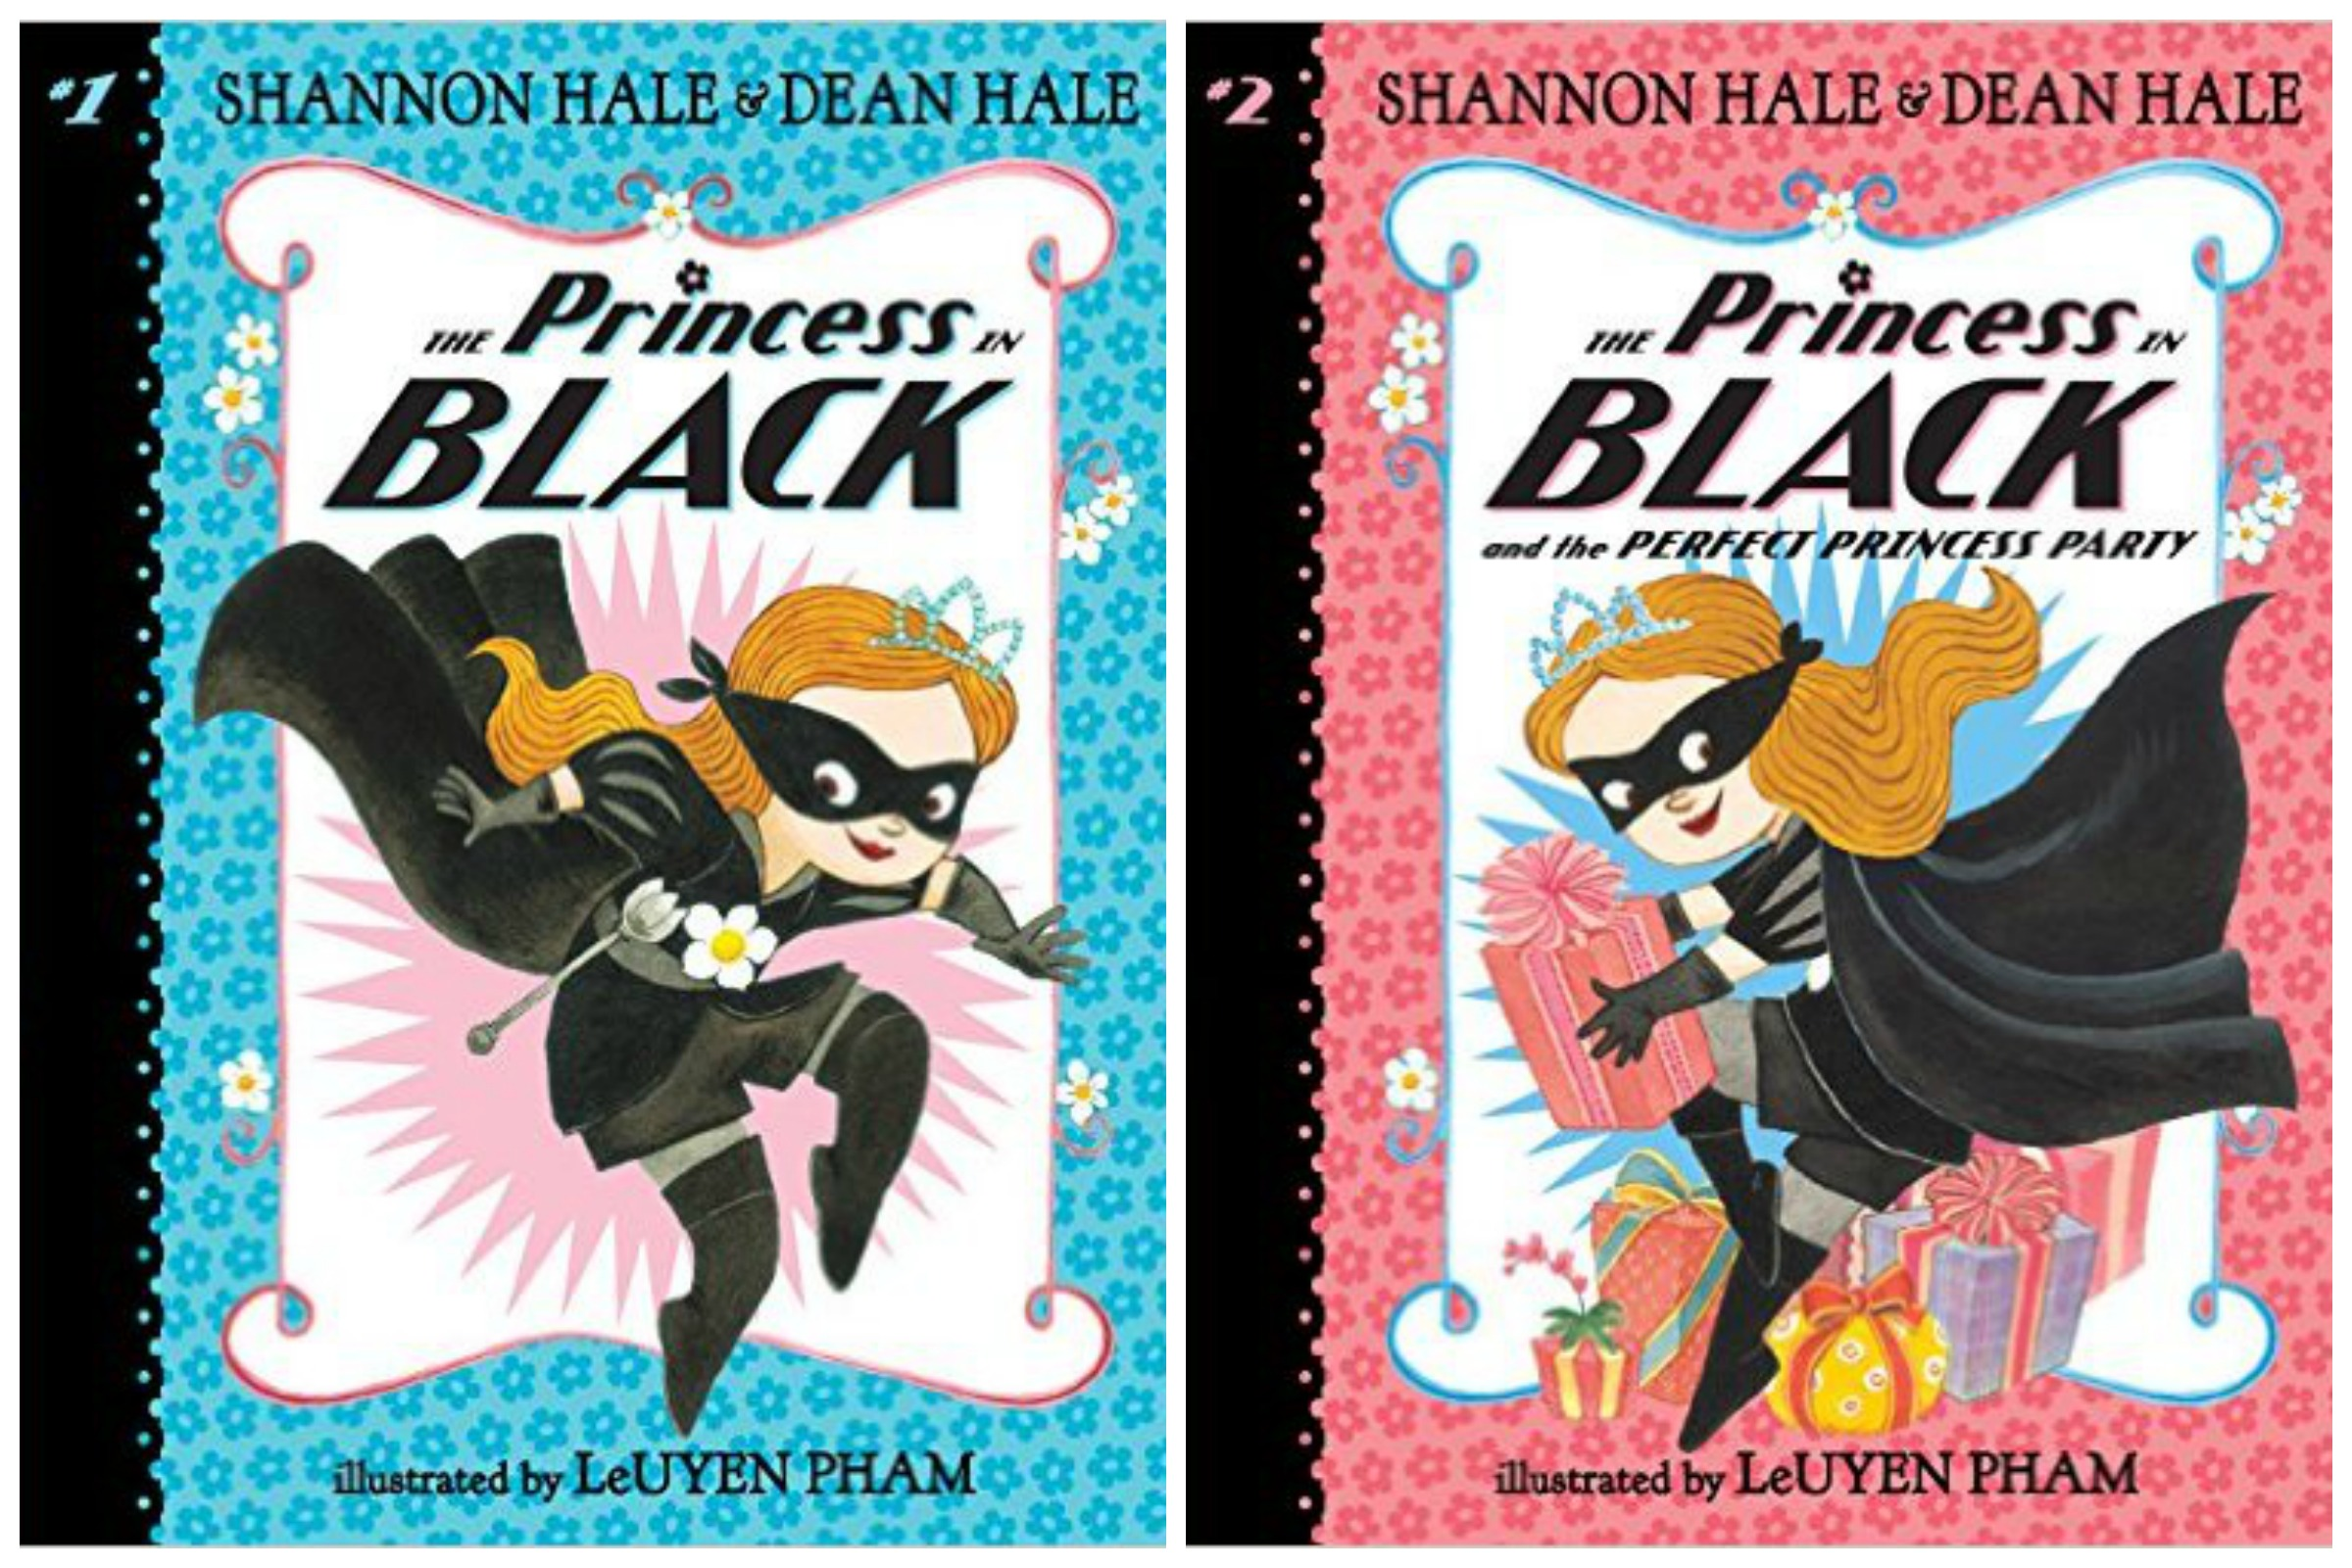 Princess in Black 1 and 2